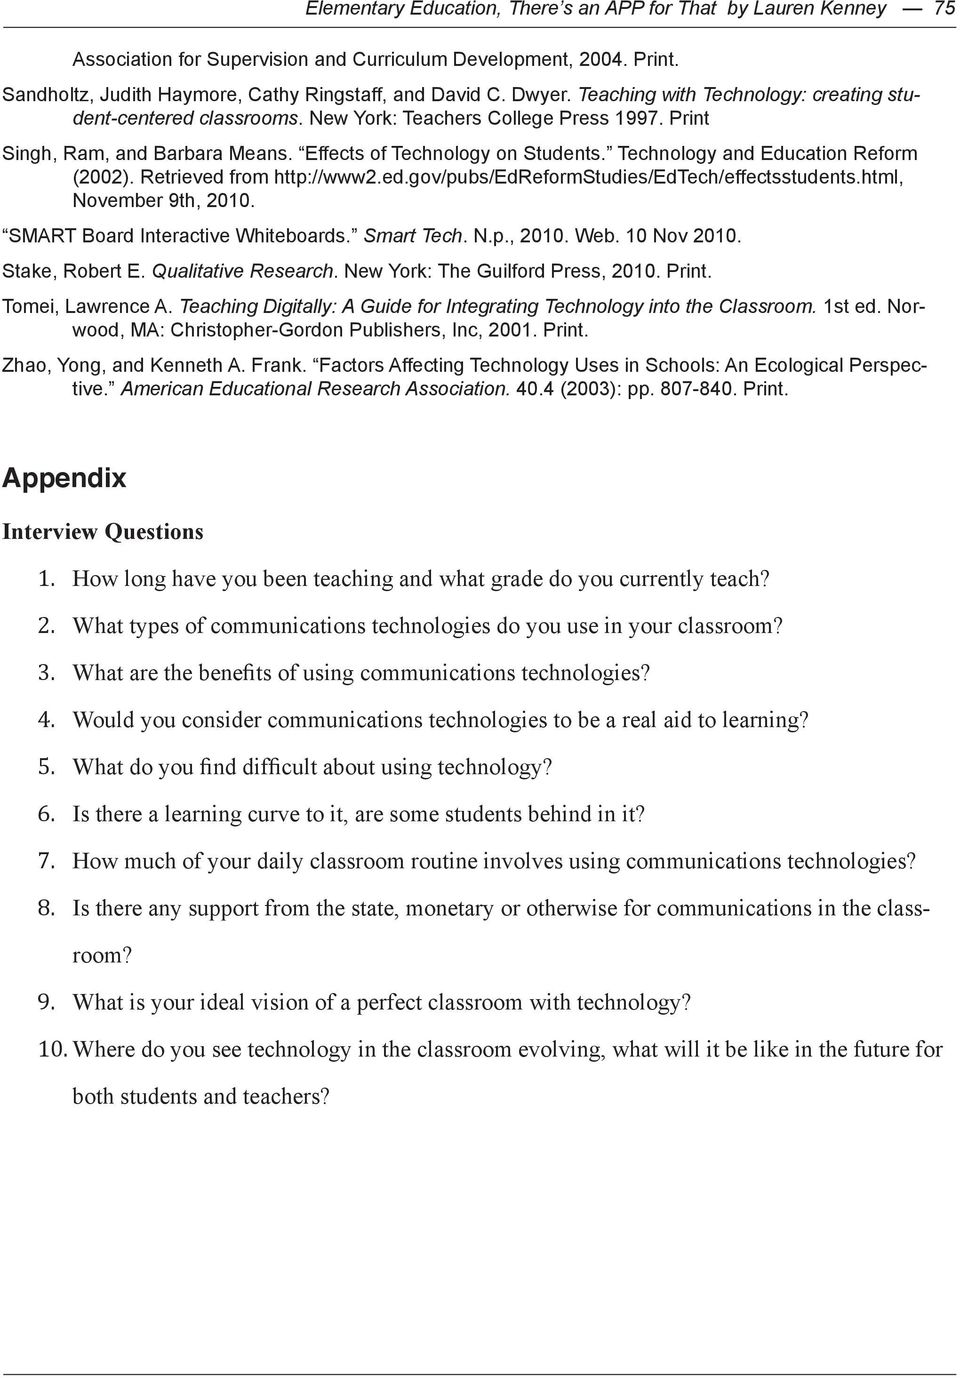 Technology and Education Reform (2002). Retrieved from http://www2.ed.gov/pubs/edreformstudies/edtech/effectsstudents.html, November 9th, 2010. SMART Board Interactive Whiteboards. Smart Tech. N.p., 2010. Web.